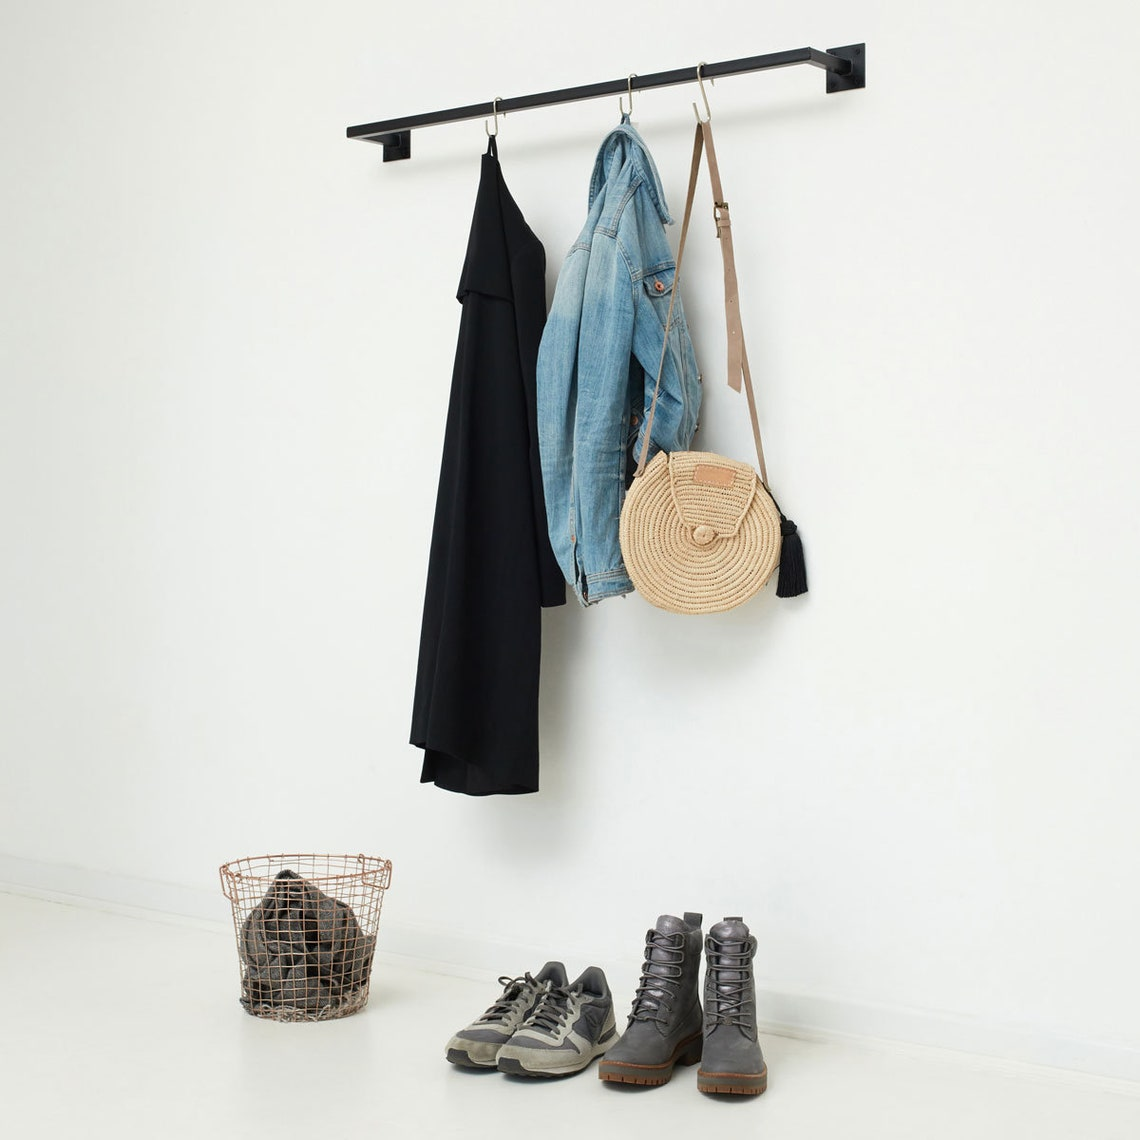 Clothes rack in industrial style Scandinavian - welded & powder coated - wardrobe SIMPLE LINE - various sizes